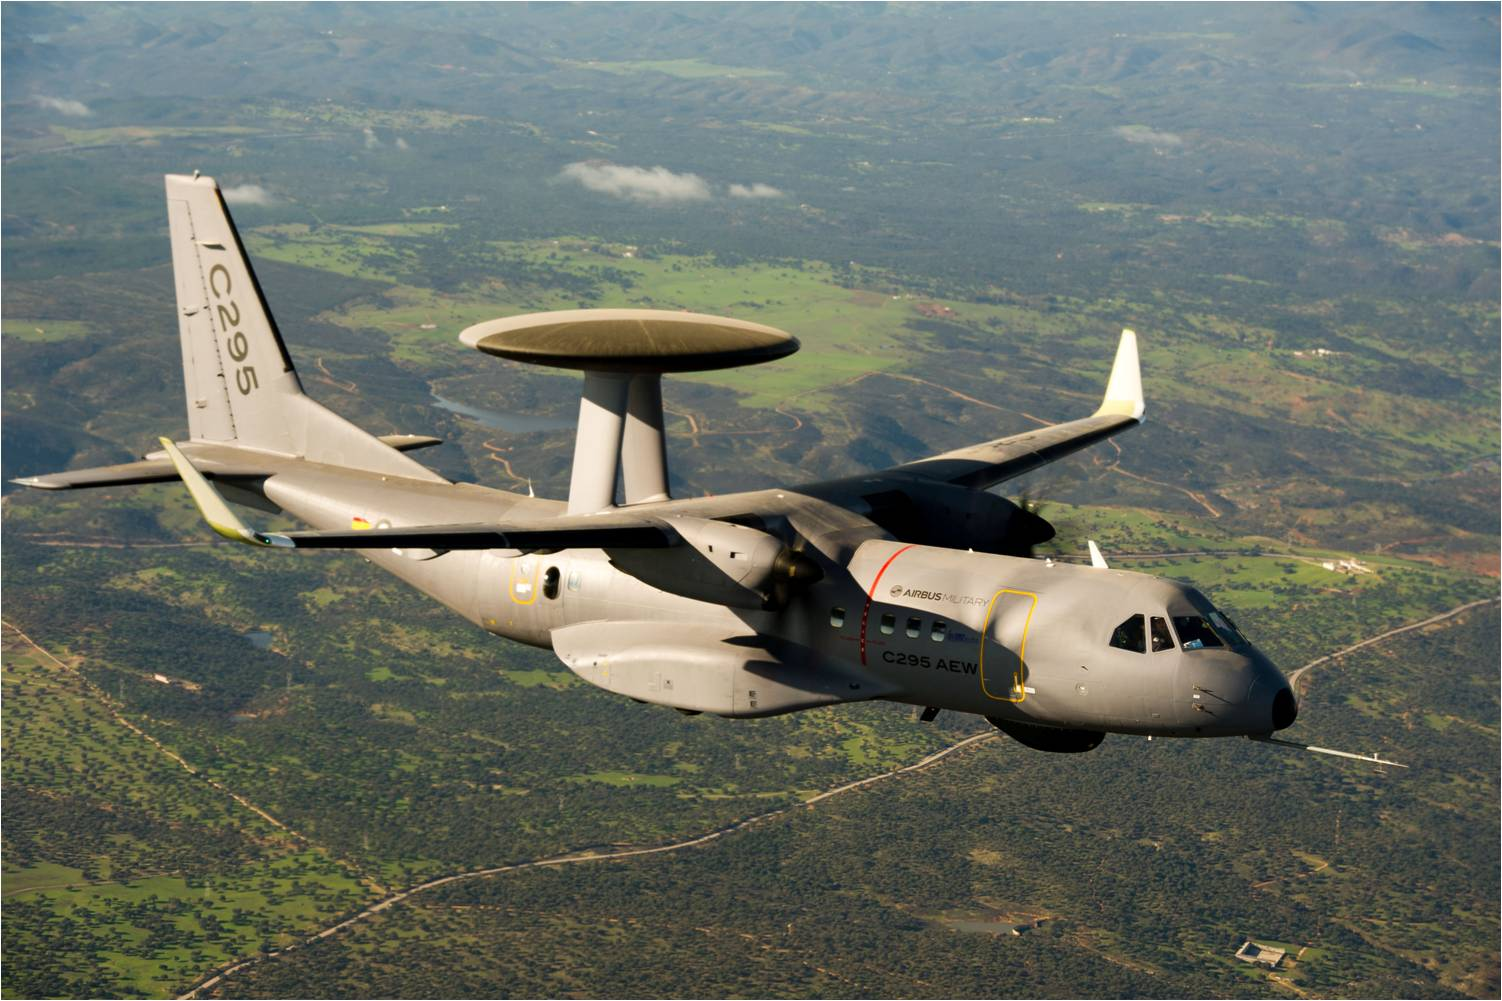 aircraft winglets Washington, dc: the national academies press doi:  directed the air force to provide a report examining the feasibility of modifying its aircraft with winglets.